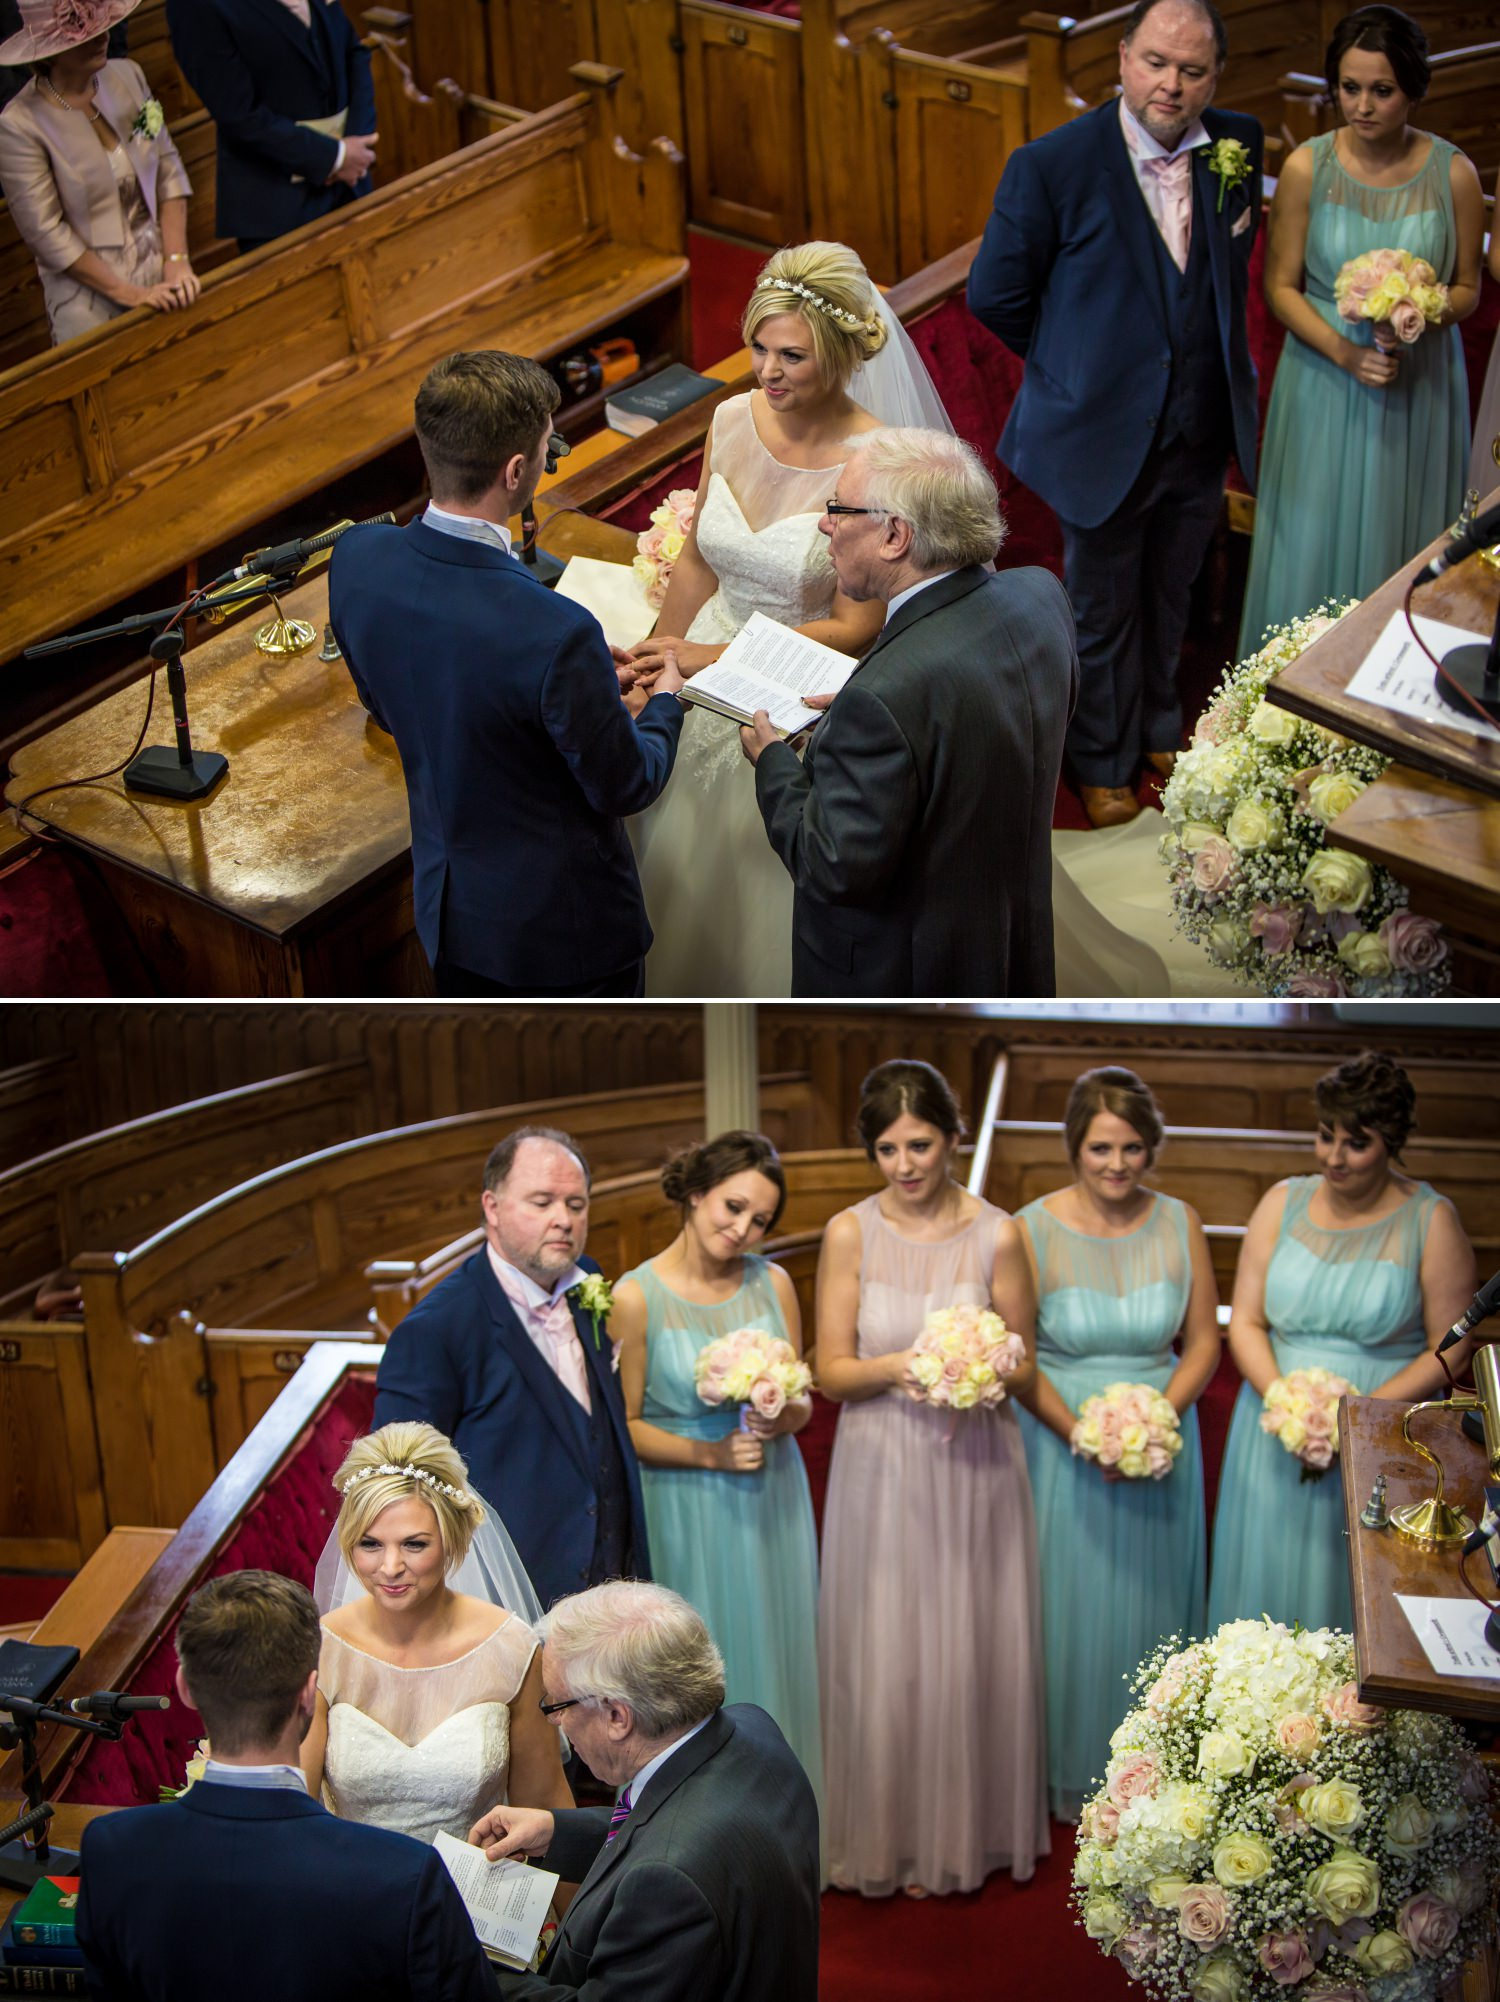 Wedding photograph of wedding ceremony at Quay Hotel, North Wales